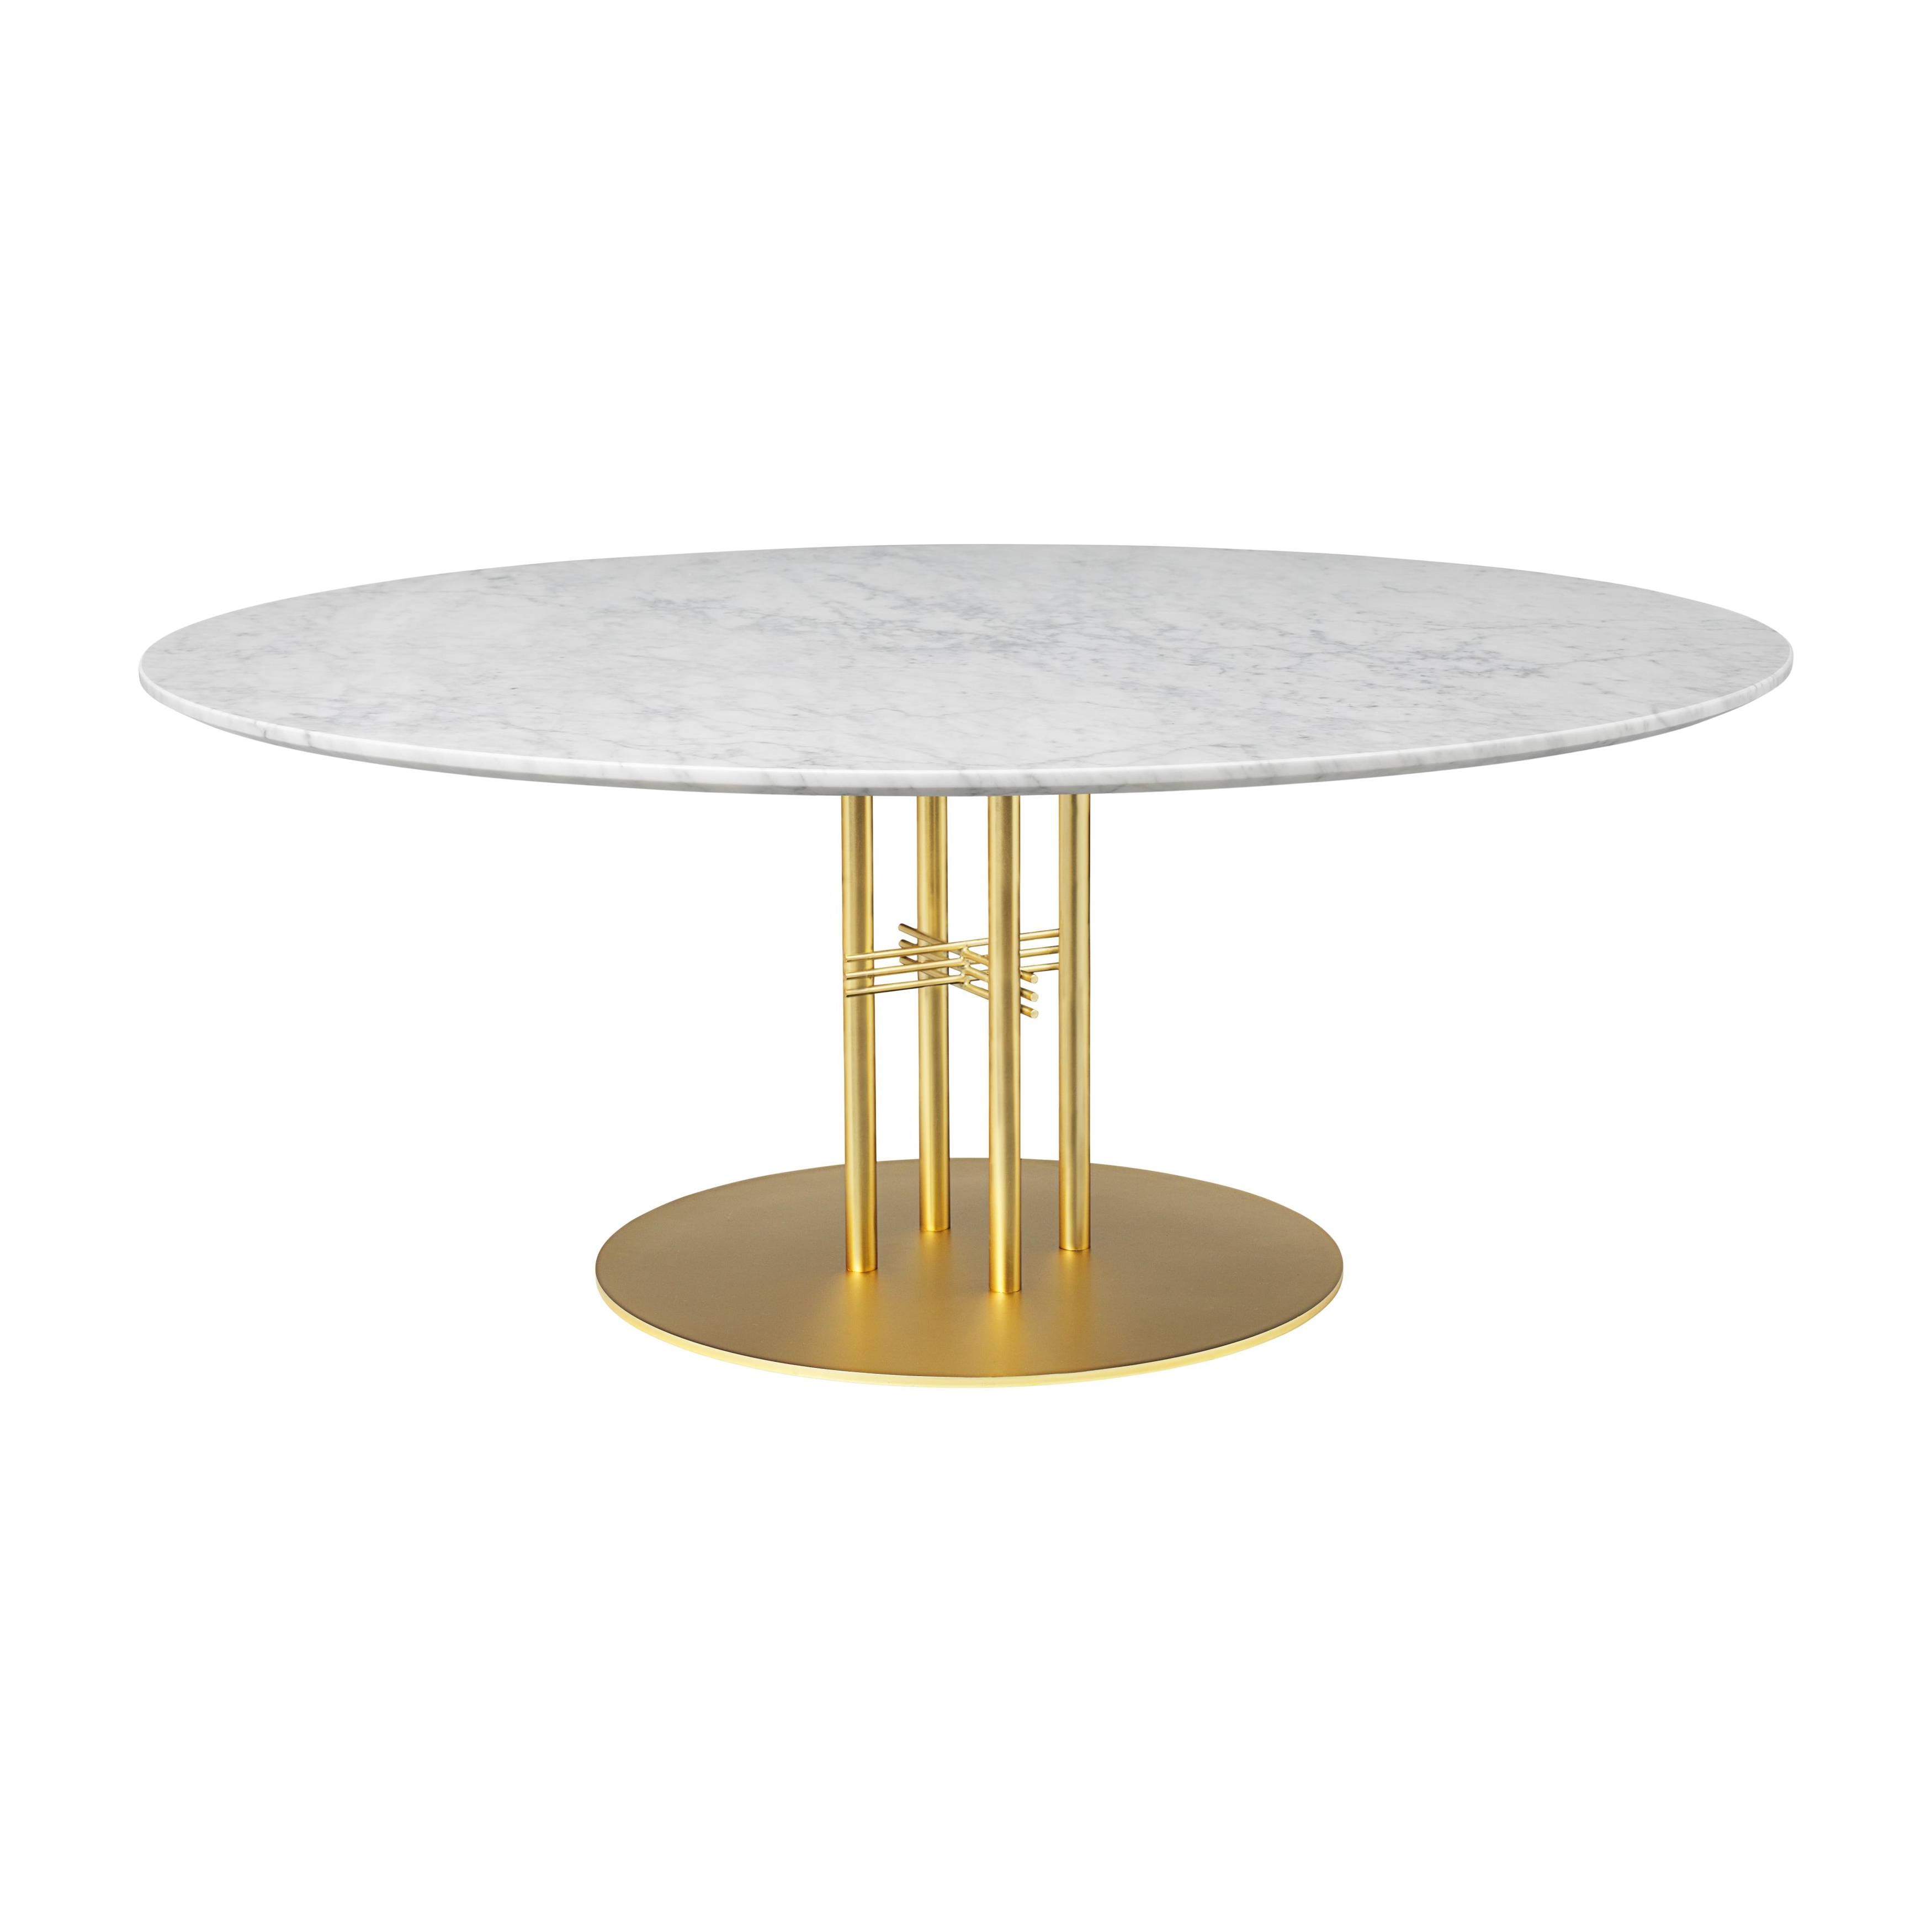 TS Column Lounge Table: Extra Large + Brass Base + White Carrara Marble